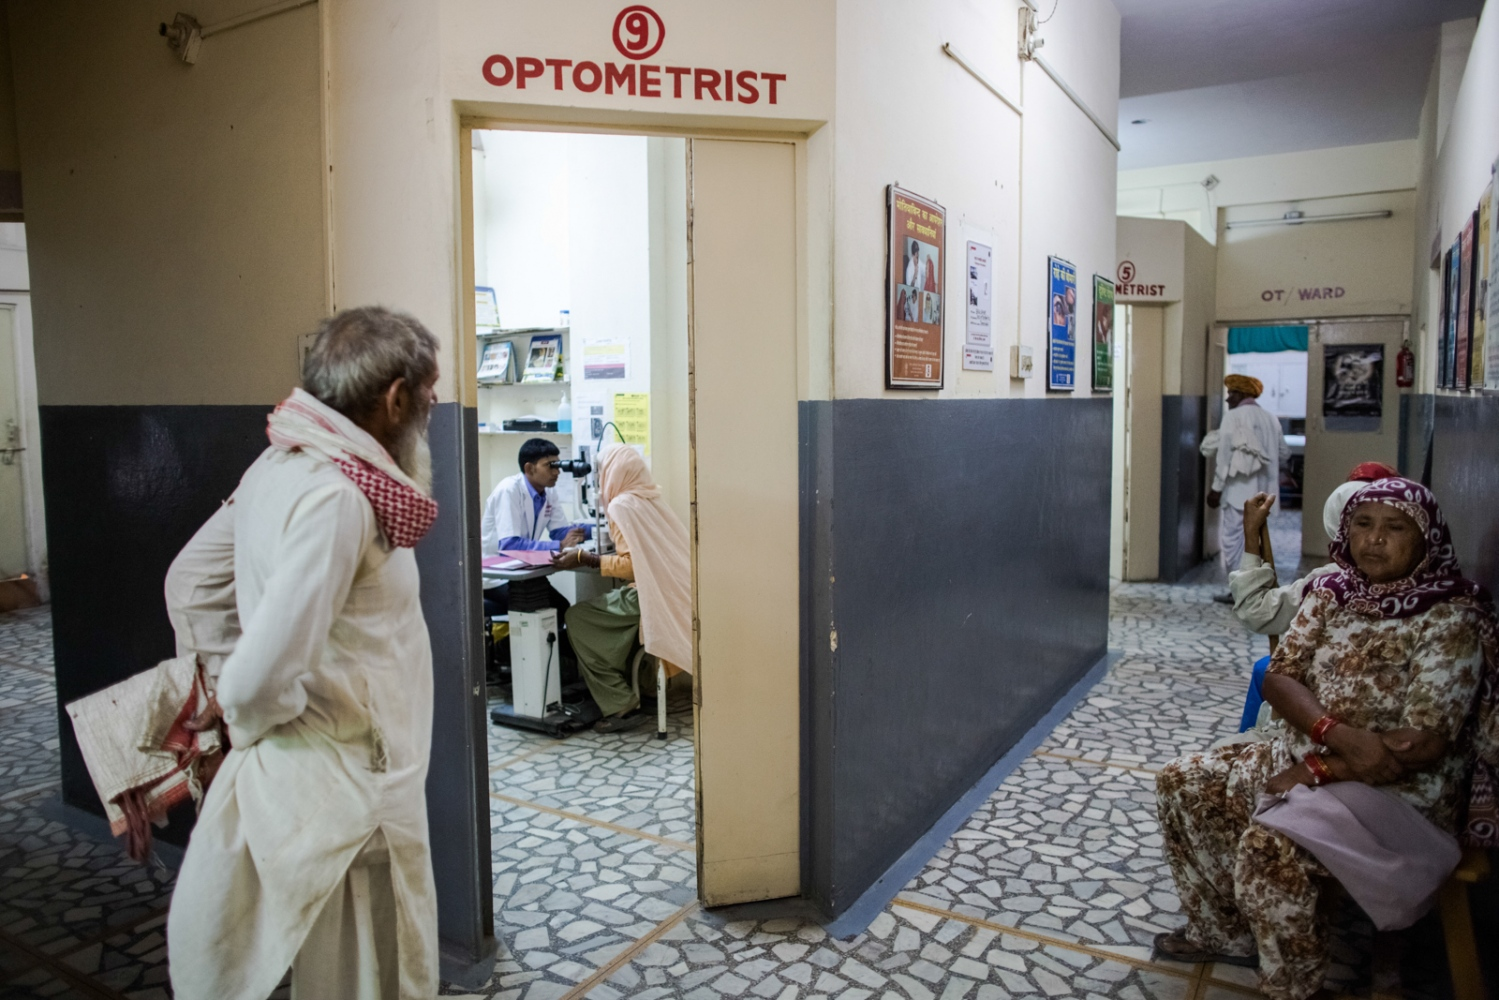 Indian patients wait to be seen at the Dr Shroff Charity Eye Hospital in Alwar in the state of Rajasthan on August 28, 2014.